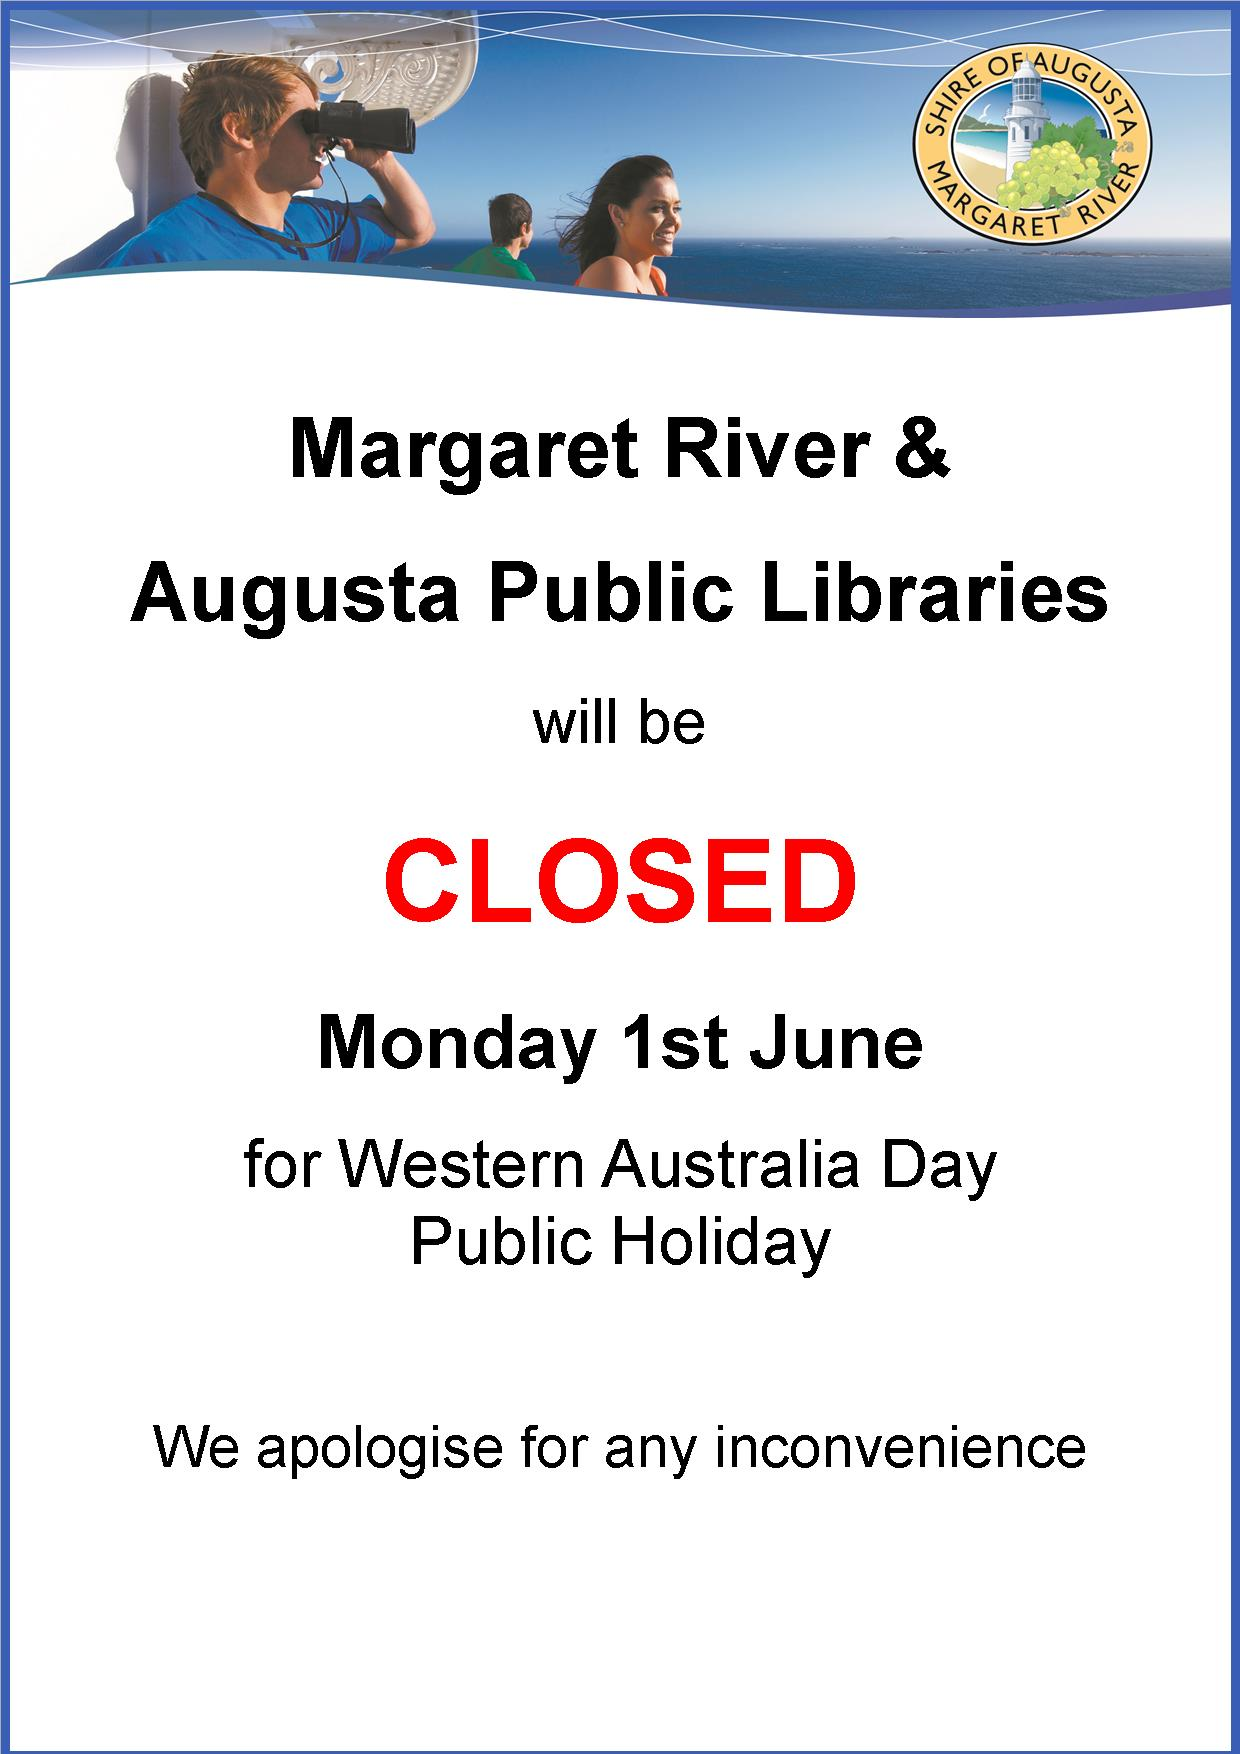 Margaret river library opening hours